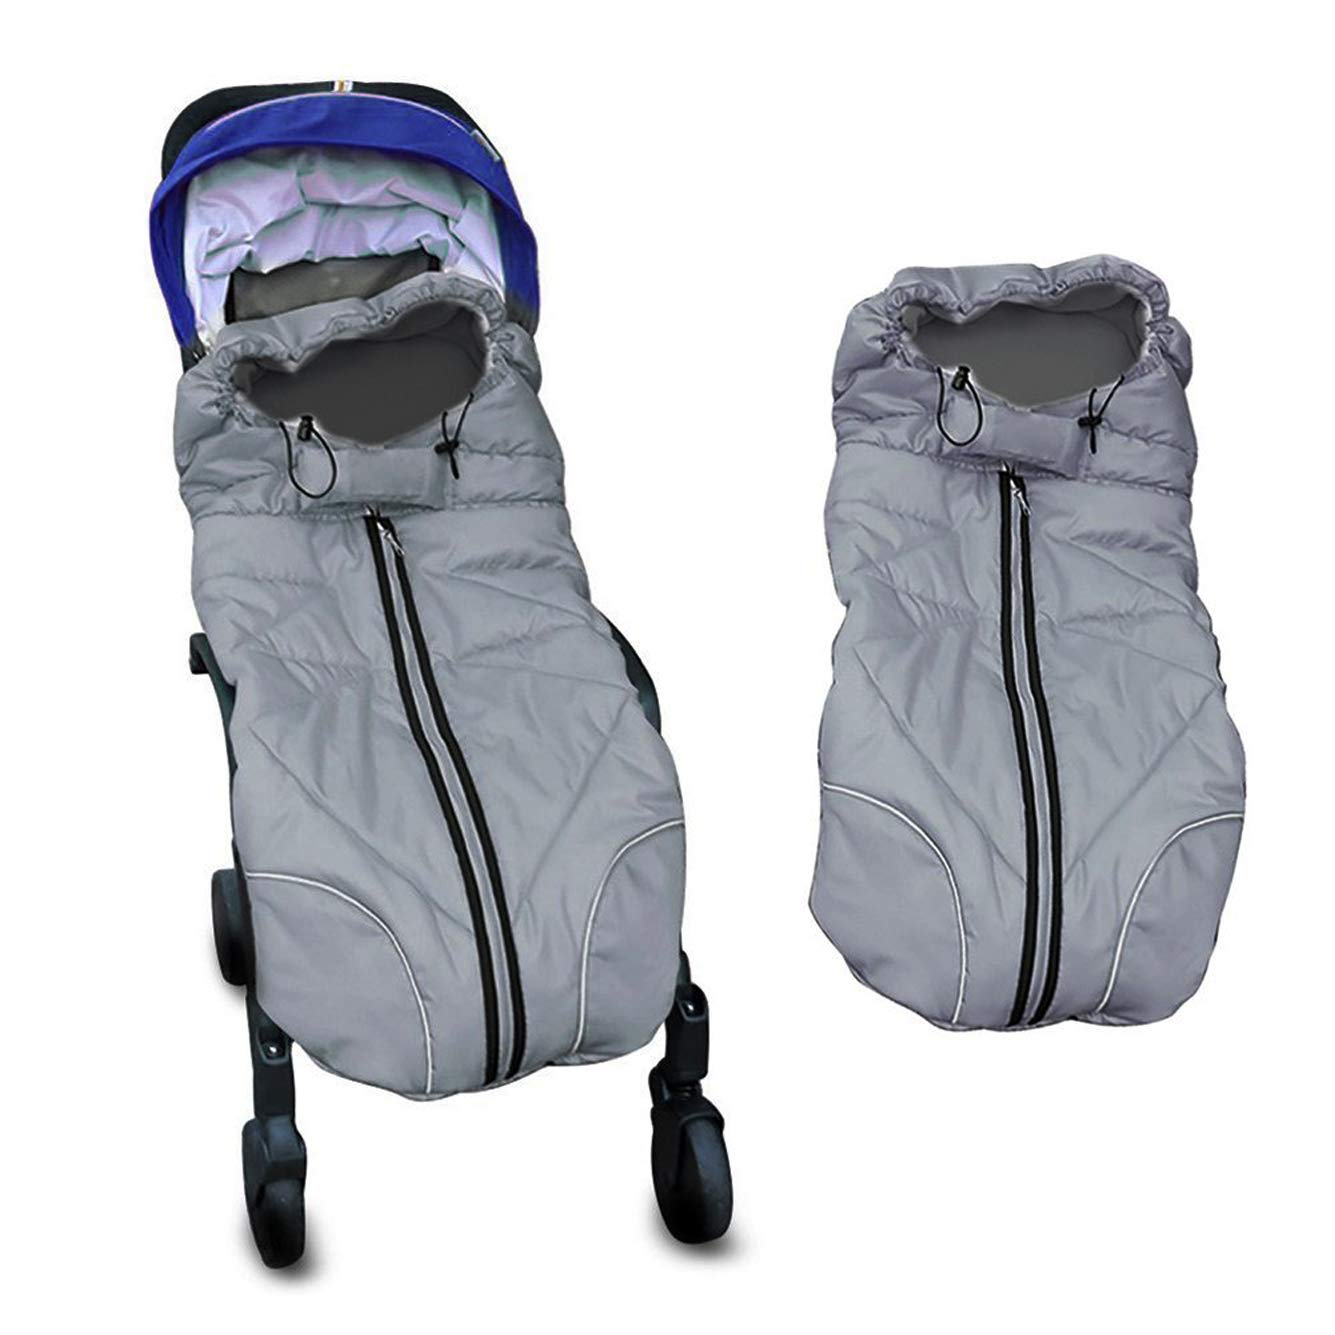 Waterproof Universal Baby Stroller Sleeping Bag Footmuff Sack Grey by Berocia (Baby Stroller Sleeping Bag) by Berocia